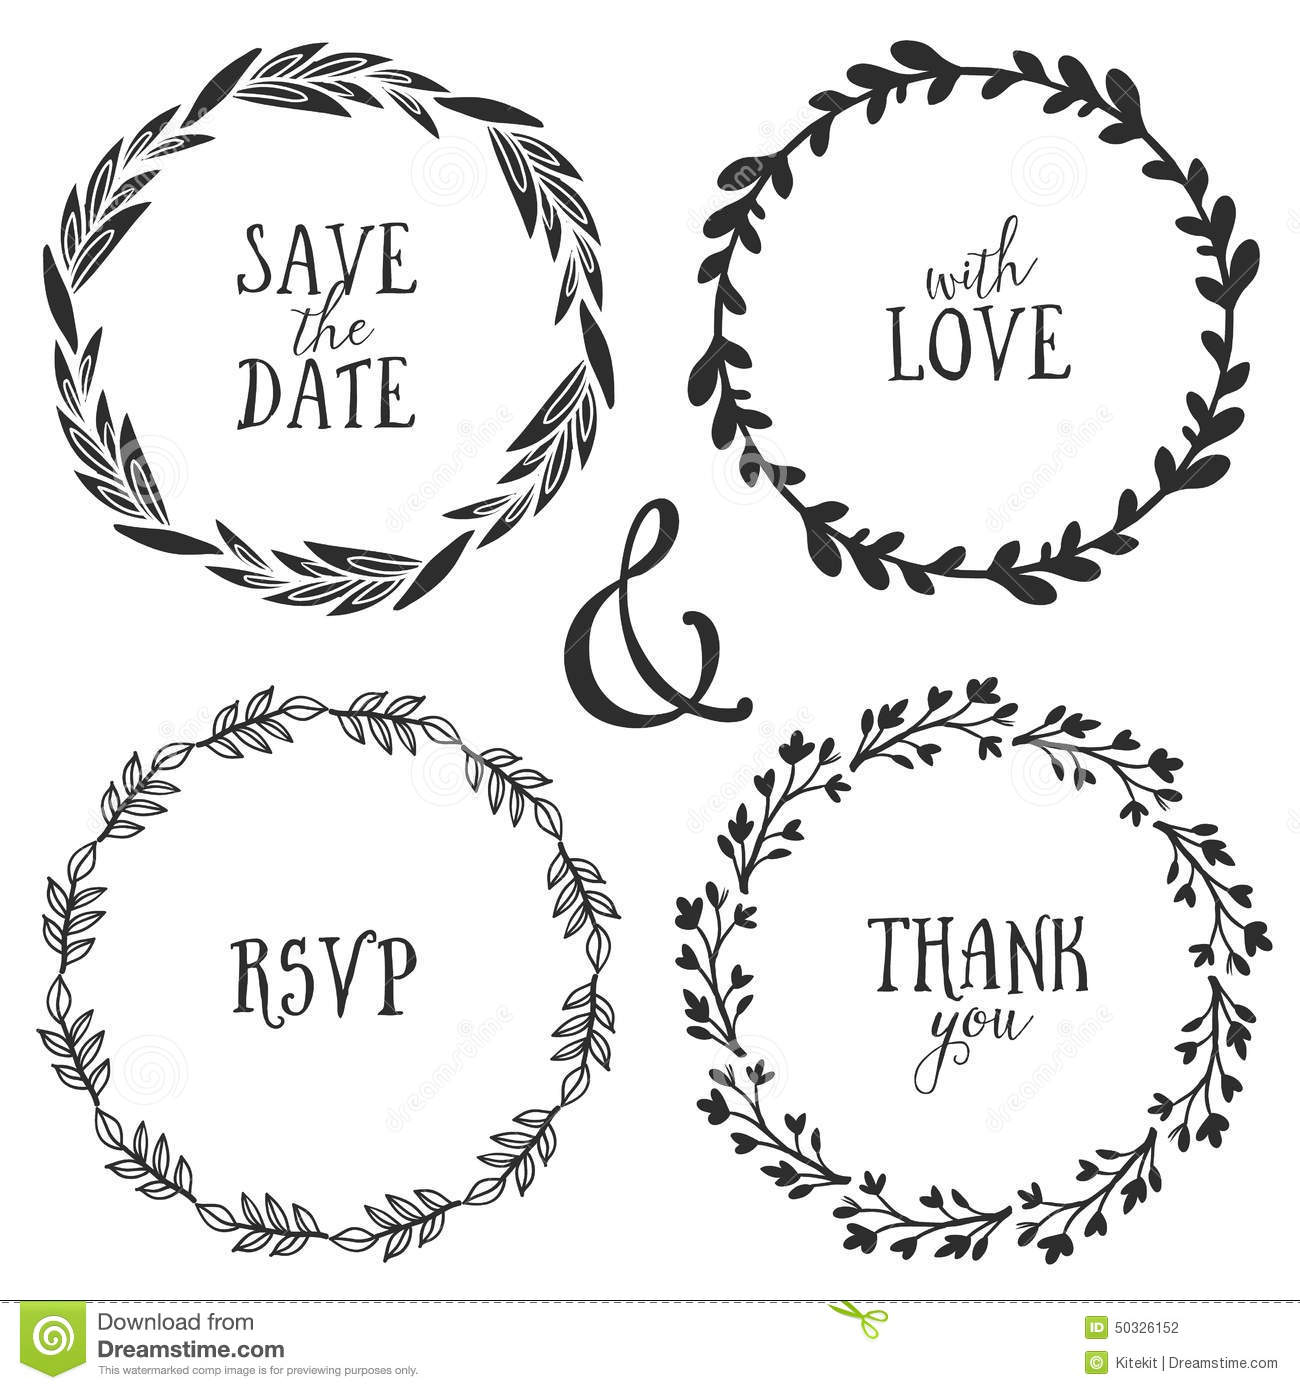 Line clipart rustic Download Rustic drawings clipart Download